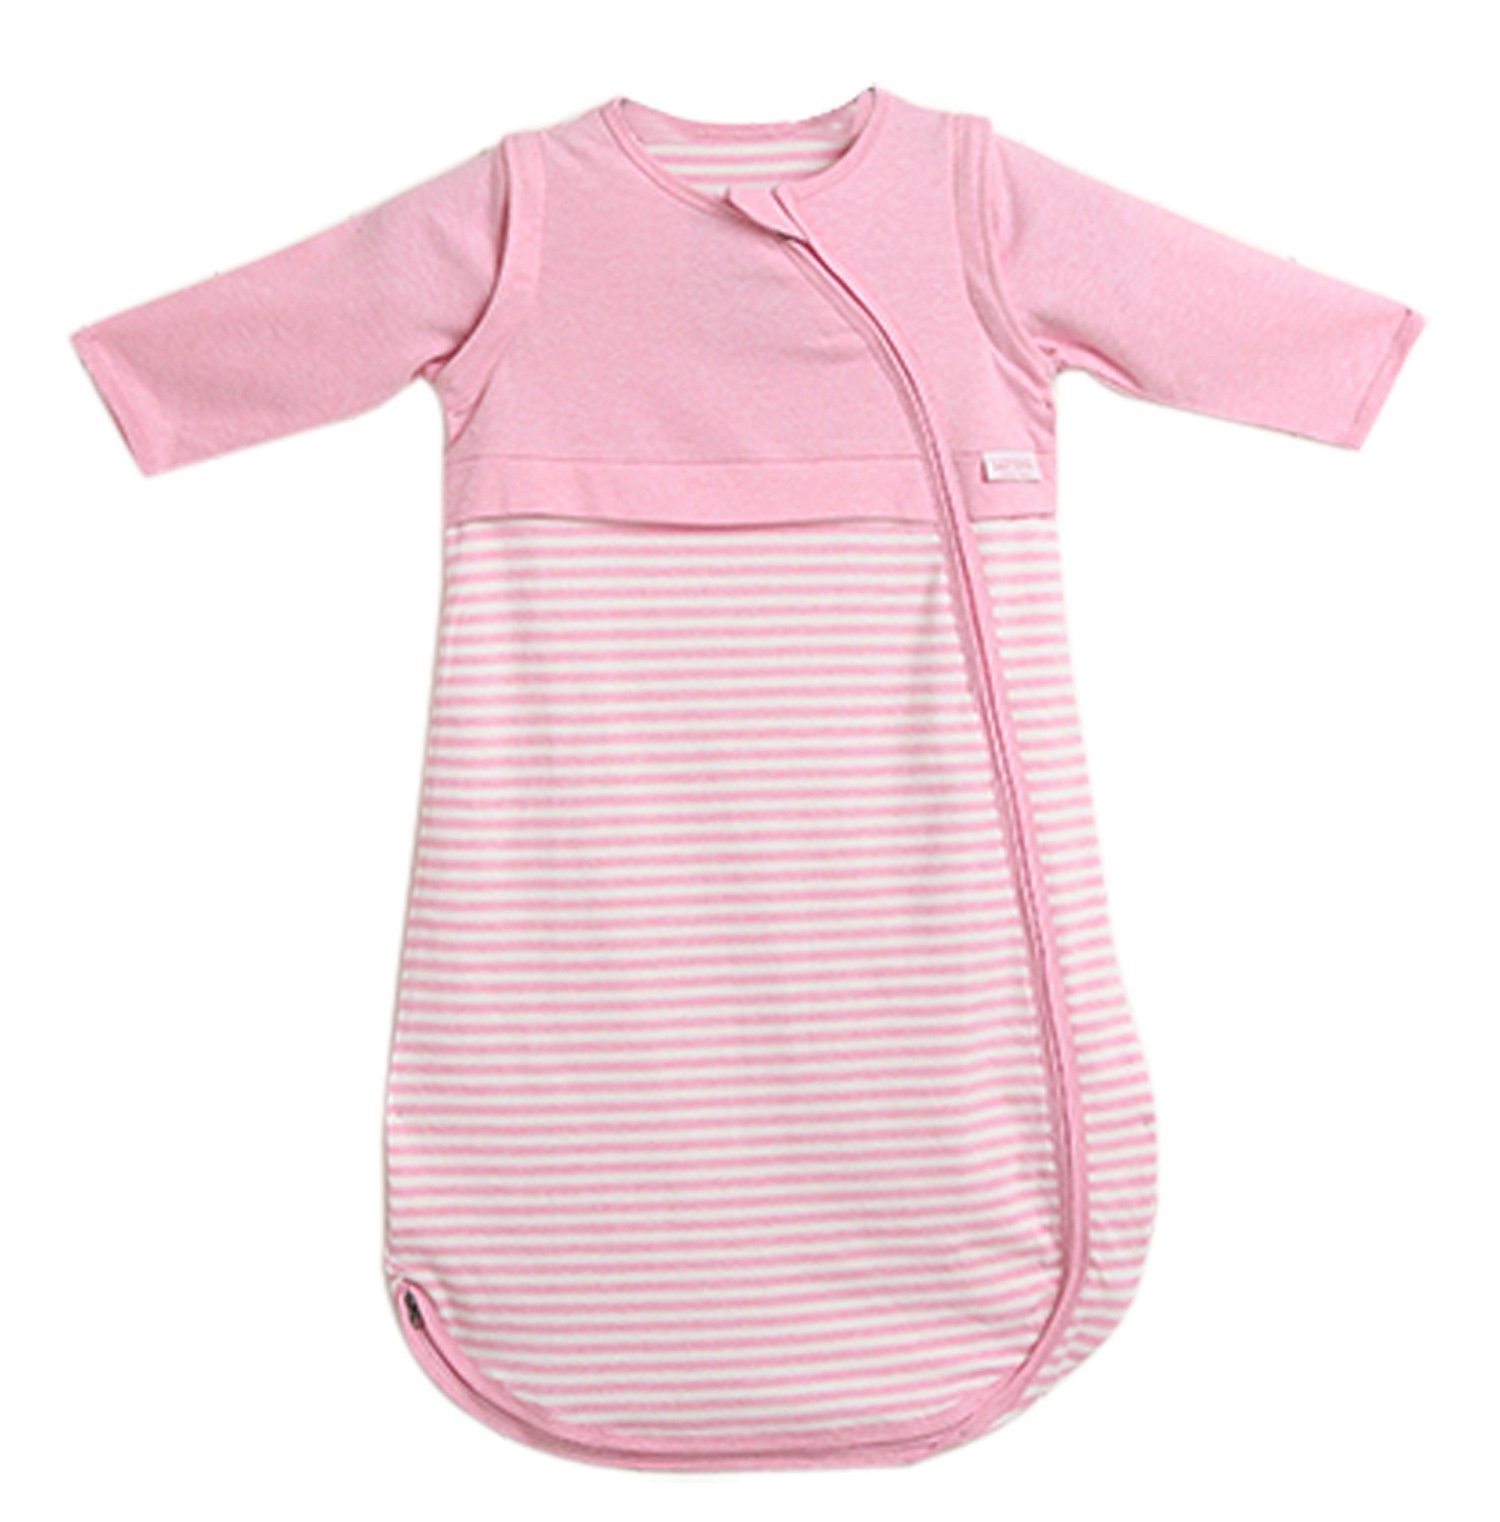 LETTAS Baby Girls 100% Cotton Stripe Removable Sleeve Sleeping Bag 0.5 Tog - Soft Wearable Blanket Pink (12-24 Months)